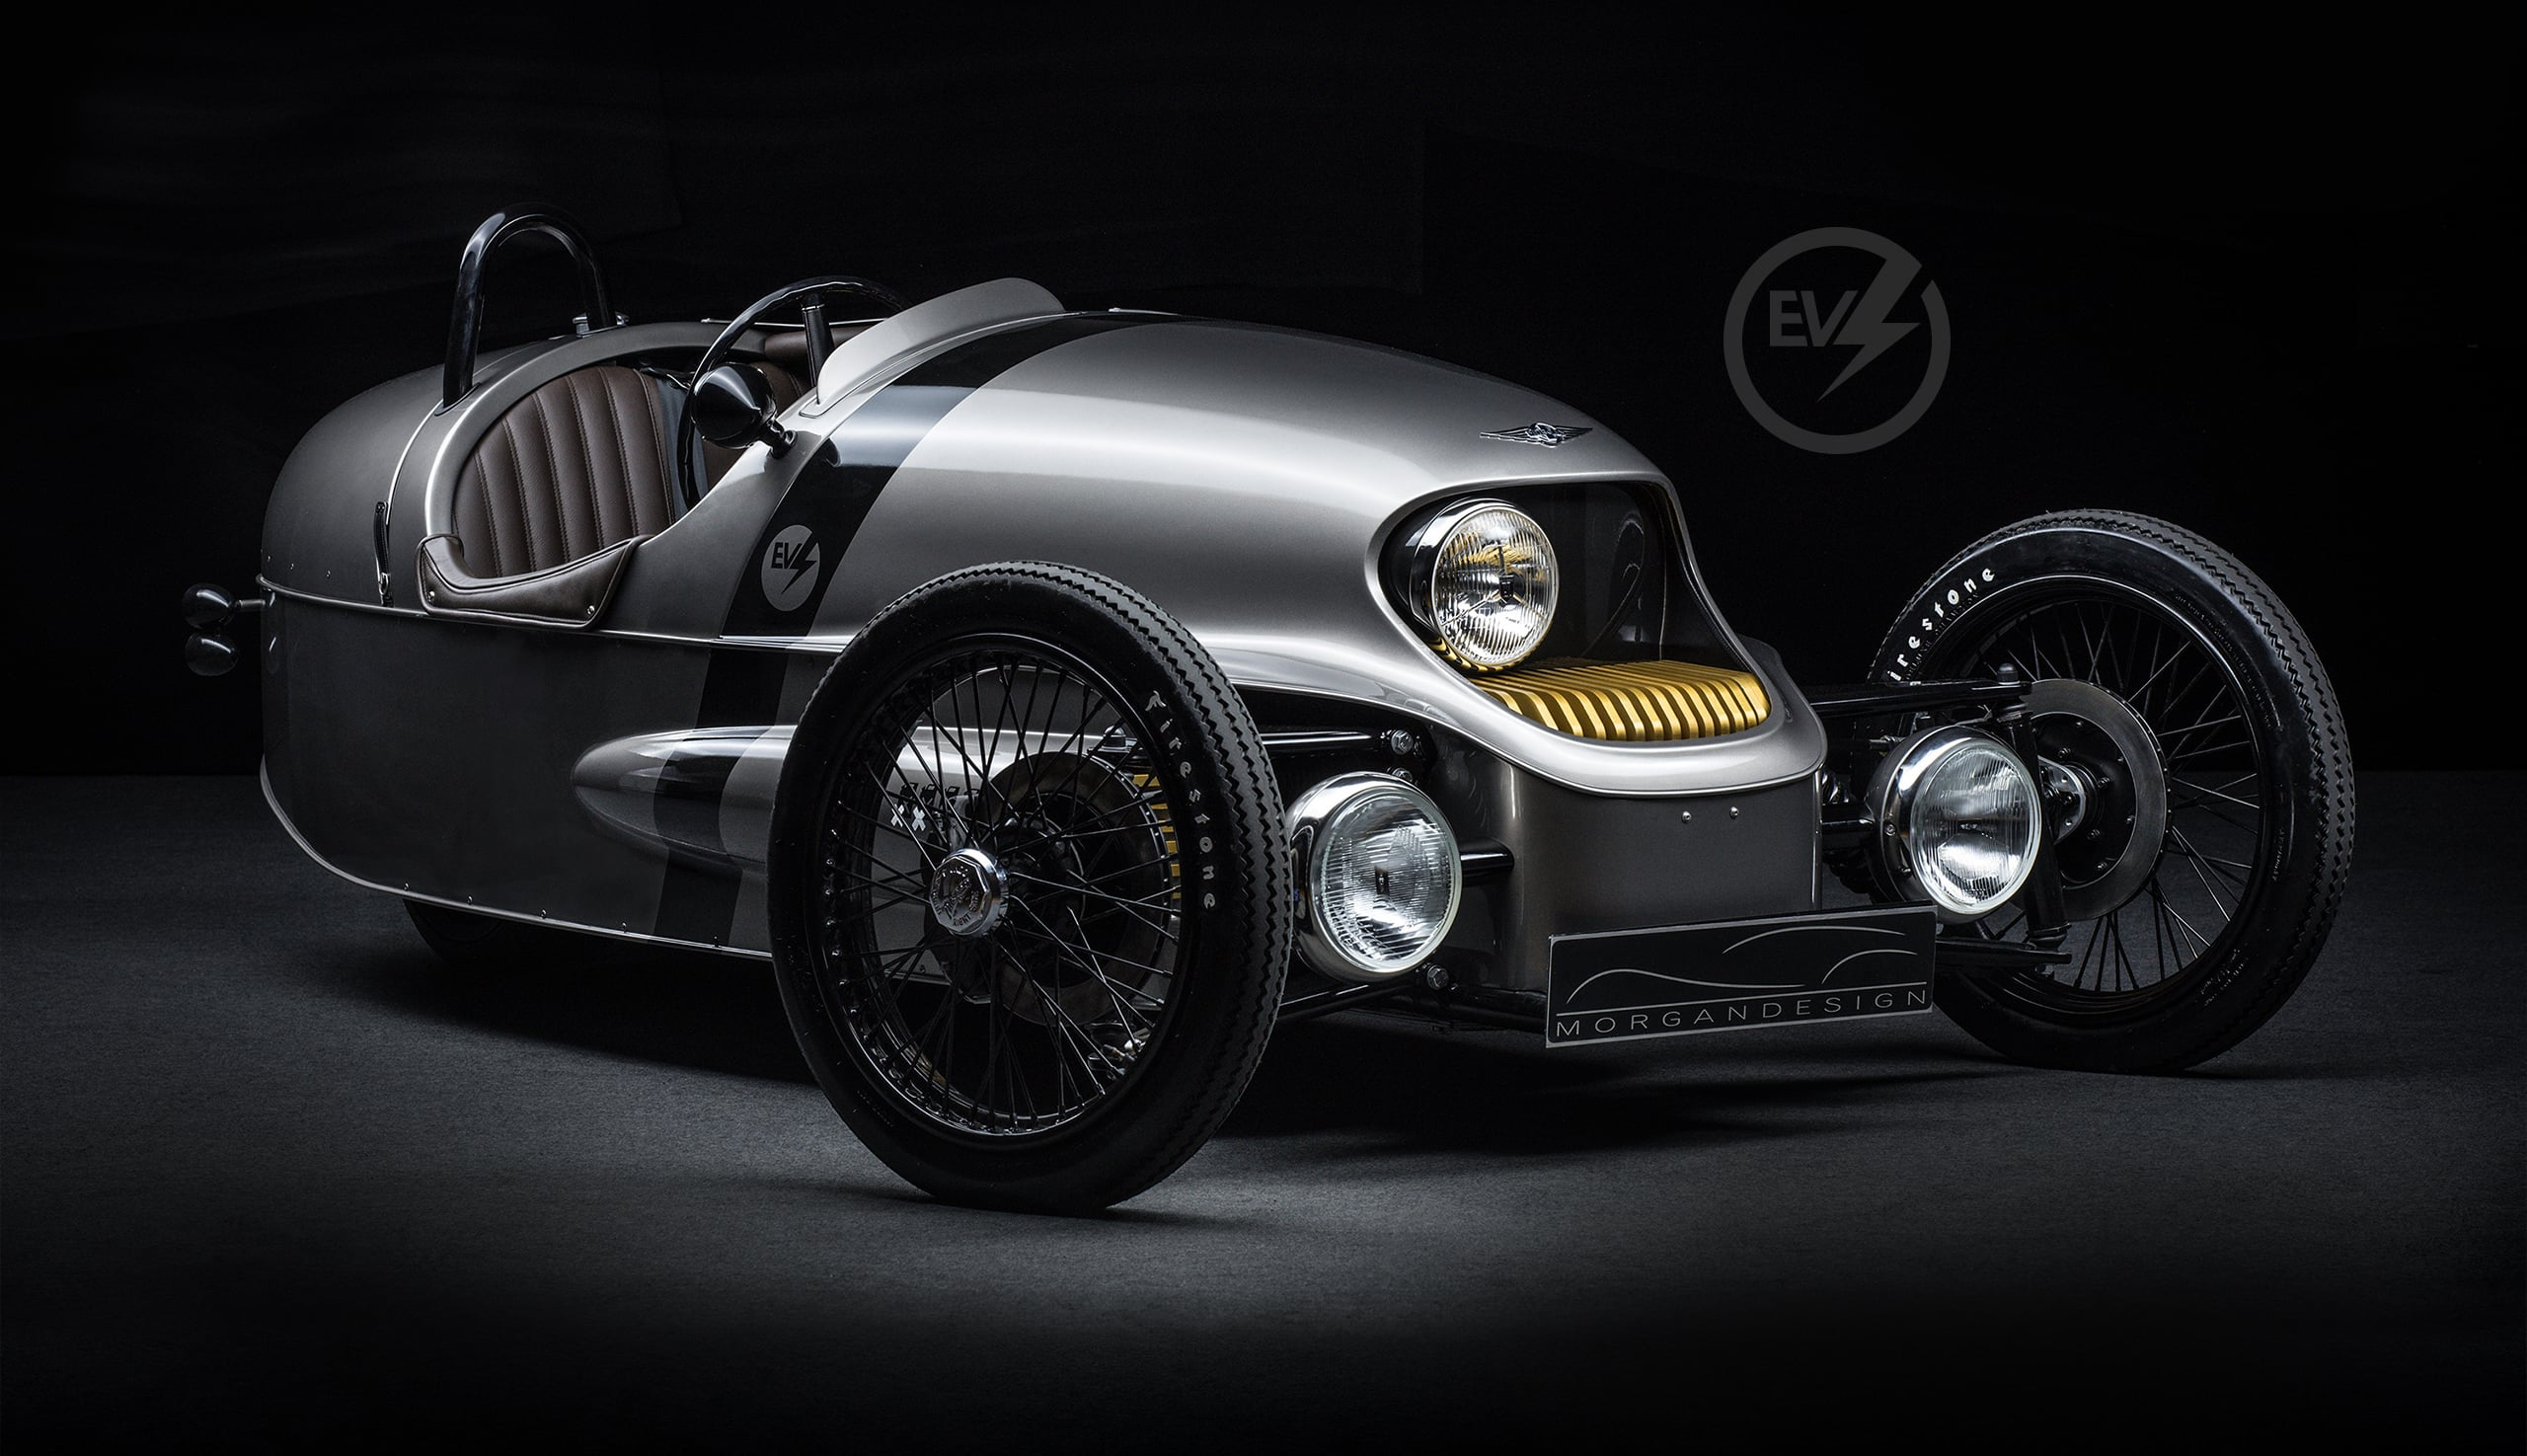 MOTOR: MORGAN Morgan launches EV3